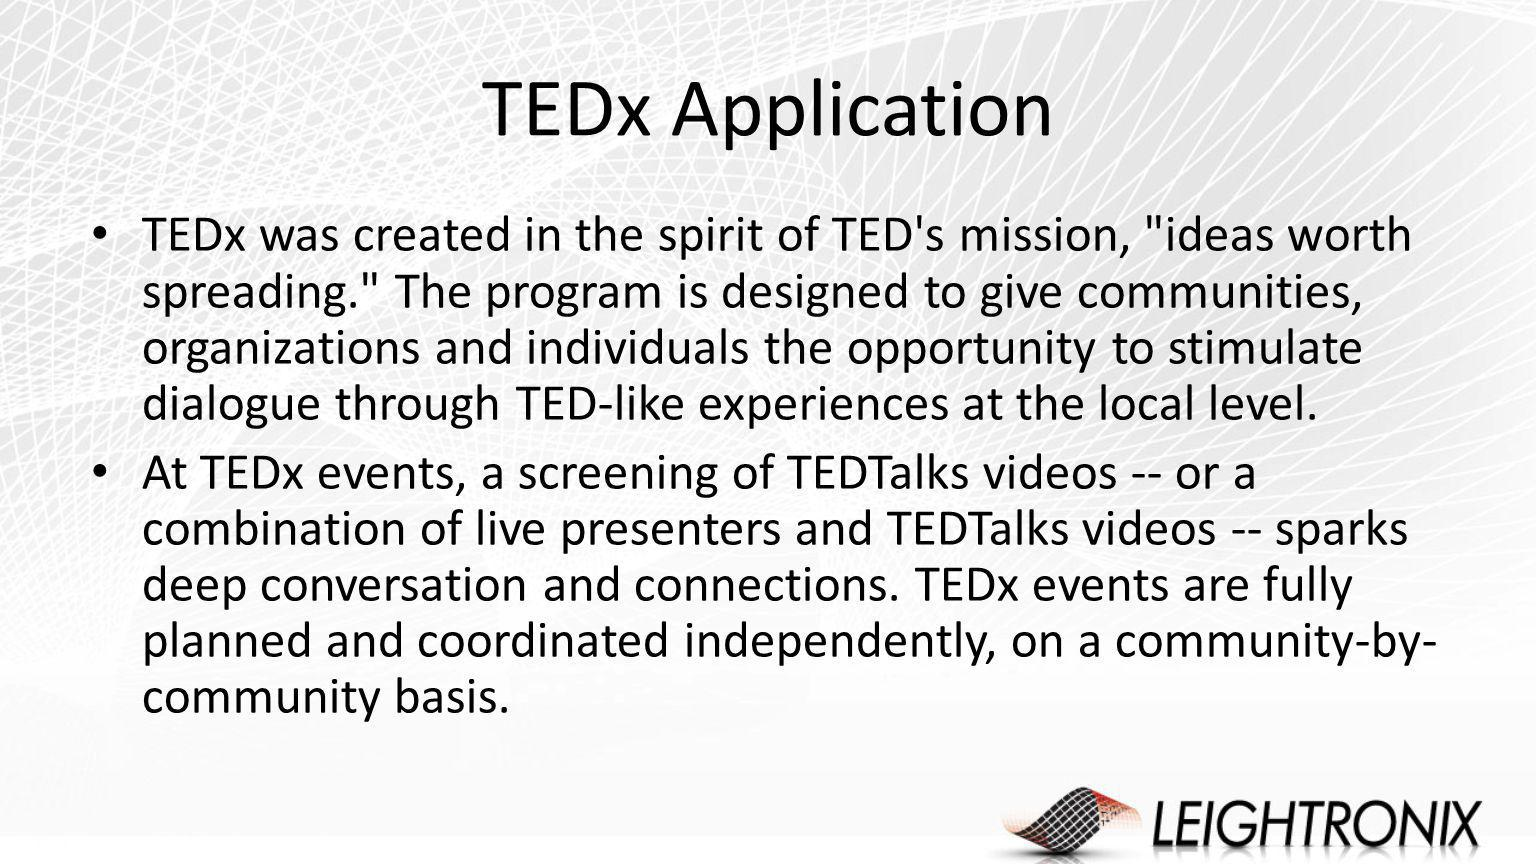 TEDx Application TEDx was created in the spirit of TED s mission, ideas worth spreading. The program is designed to give communities, organizations and individuals the opportunity to stimulate dialogue through TED-like experiences at the local level.